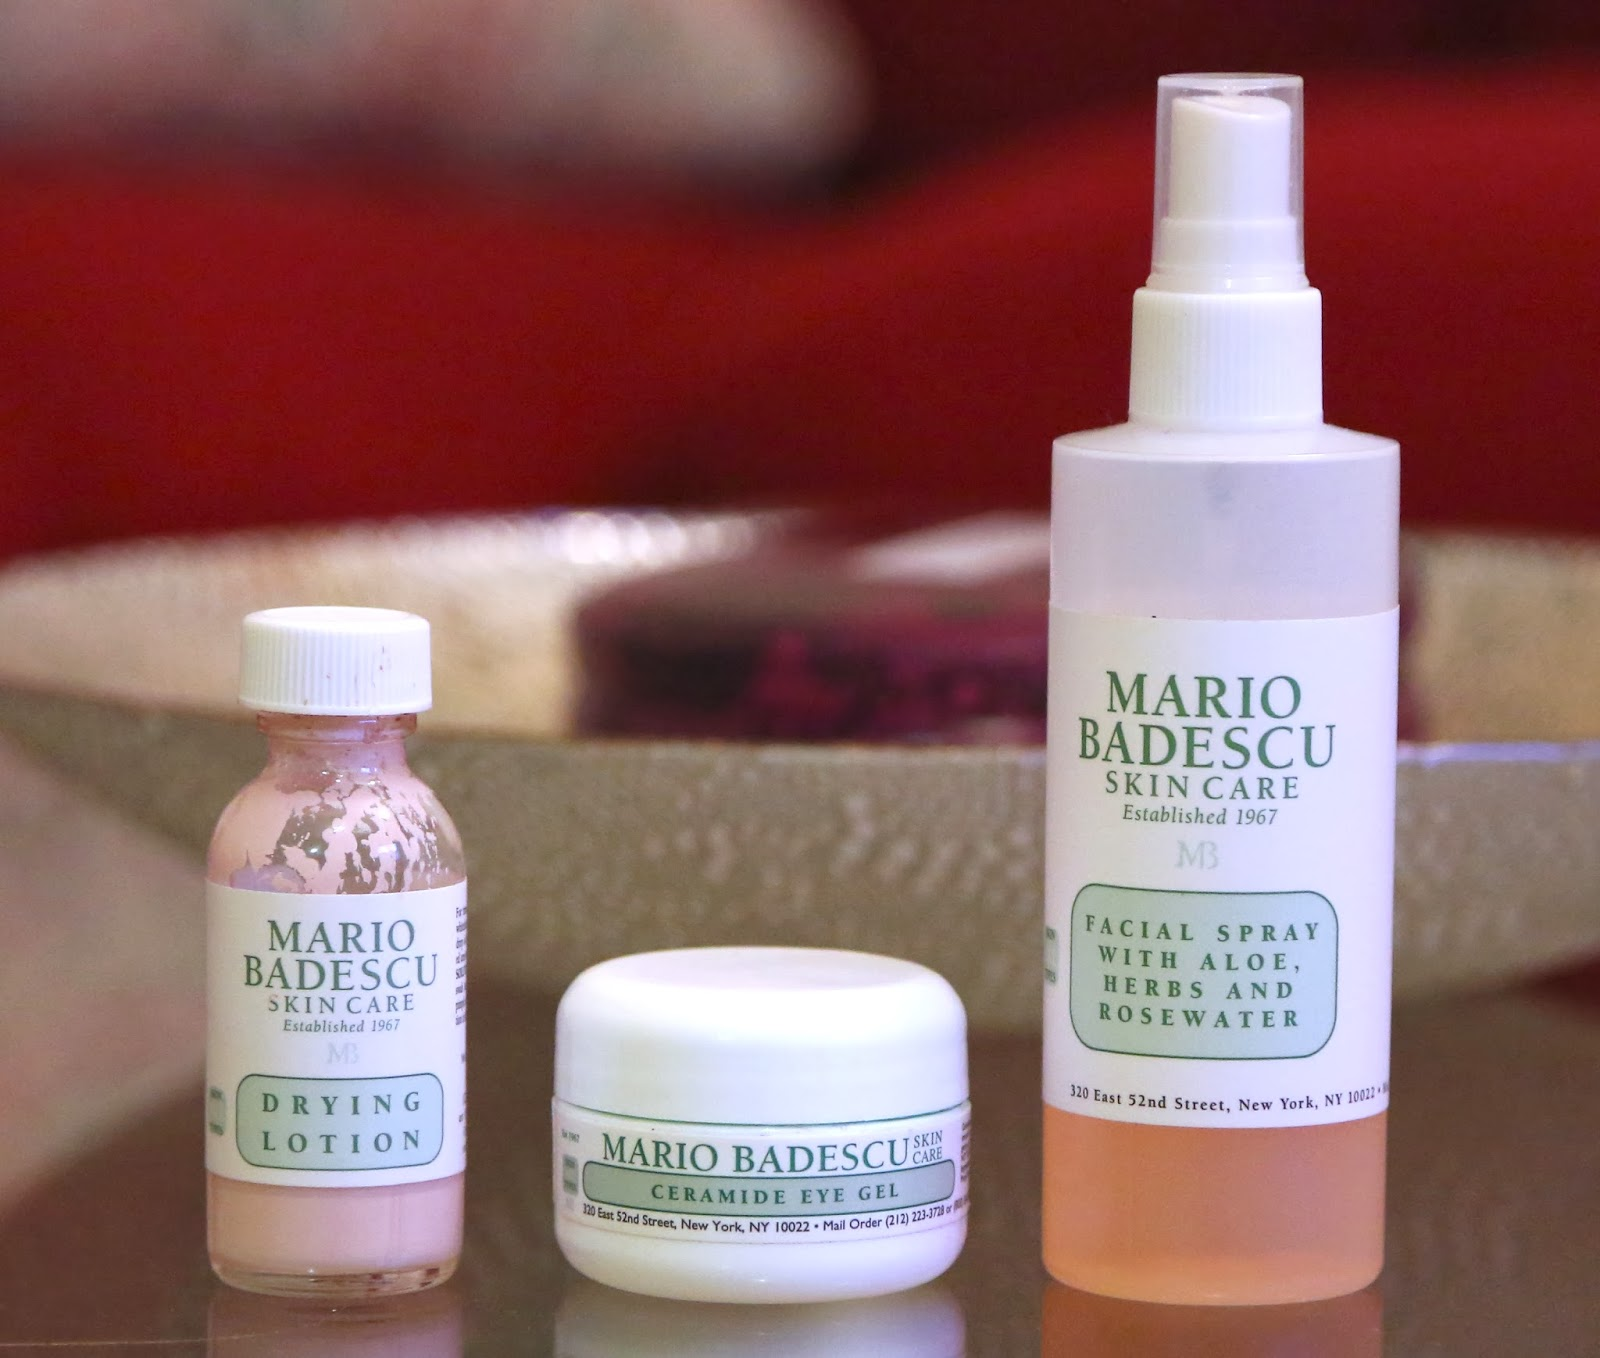 skincare favorites & routine: best of mario badescu (aka: other skin solutions), skincare, skin, care, favorites, and, &, routine, best, of mario, badescu, aka, other, skin, solutions, solution, aloe, and, Ceramide, cream, Drying Lotion, eye, facial, favorites, gel, herbs, Mario Badescu, rosewater, routine, series, skincare, spray, with, rose, best, of, beauty, makeup, cosmetic, cosmetics, blog, blogger, bloggers, lauren, zelner, dirty, blonde, ambition, final, last, finale, popular, what, to, buy, order, pick, picks, top, product, products, hautelook, gilt, flash, sale, flashsale, face, facial, spray, rose, roses, floral, flower, flowers, gel, gels, cream, creams, creme, cremes, lotion, lotions, solution, solutions, split, separate, keep, separated, cotton, swab, swabs, q, tip, tips, QTip, QTips, Q-Tip, Q-Tips, spot, spots, pimple, pimples, acne, white, head, puff, puffy, under, eye, undereye, under-eye, swollen, swell, depuff, de-puff, reduce, soothe, calm, milium, milia, esthetician, estheticians, skin, care, special, specialist, dermatology, dermatologist, dermatologists, doctor, unique, effective, chapter, haute, off, the, installment, install, installments, impress, impressive, effect, effective, really, work, works, actually, that, unique, concern, concerns,